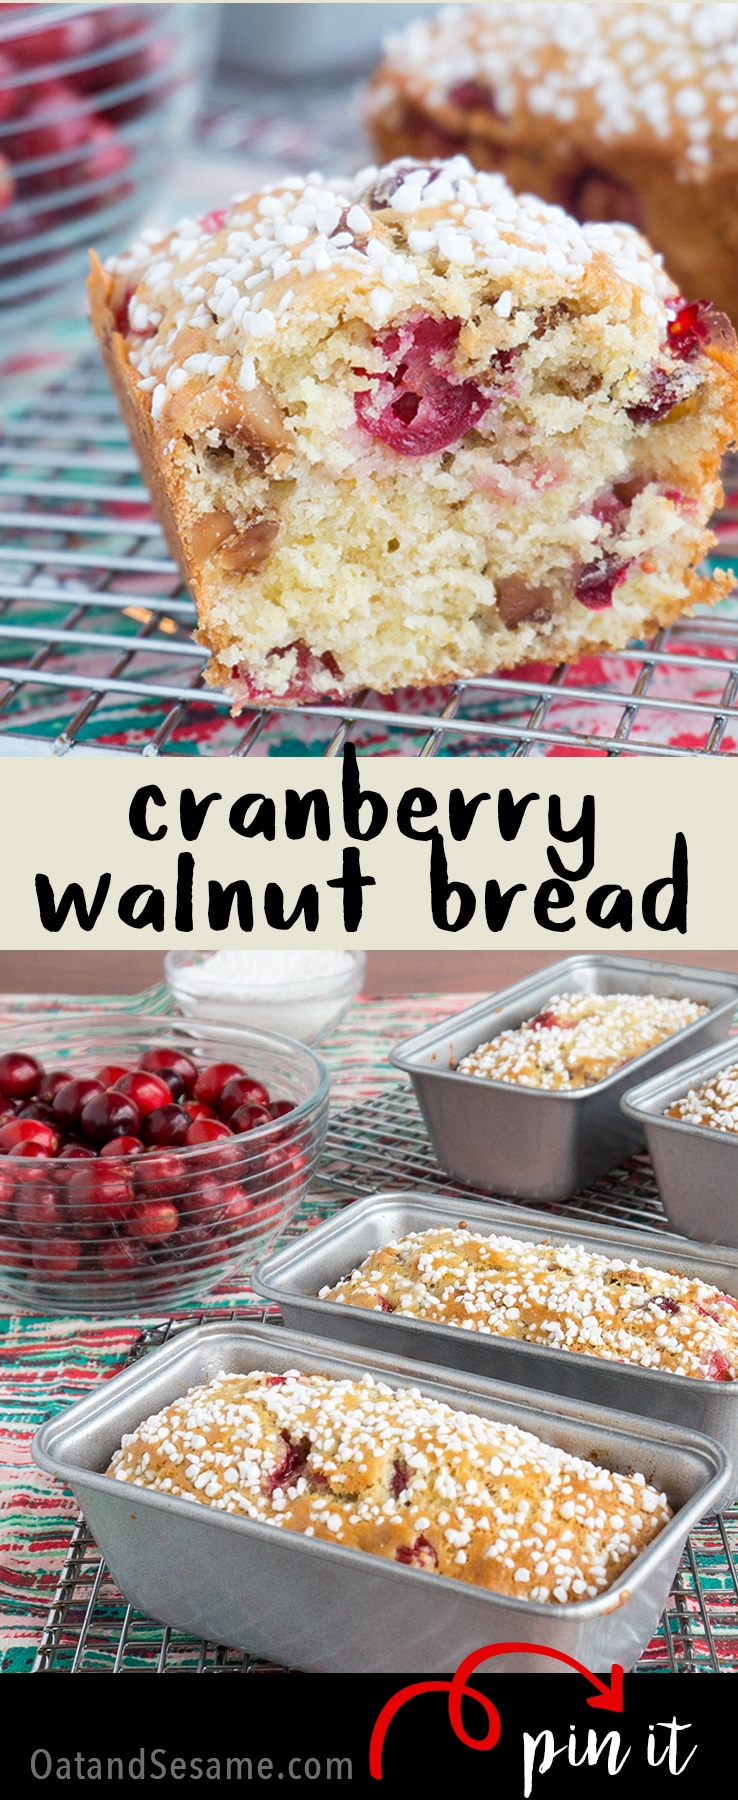 A festive holiday quick bread! Perfect for gifting! Cranberry Walnut Bread is sweet, tart and delicious! | QUICK BREAD | HOLIDAY BAKING | CRANBERRY | Recipe at OatandSesame.com